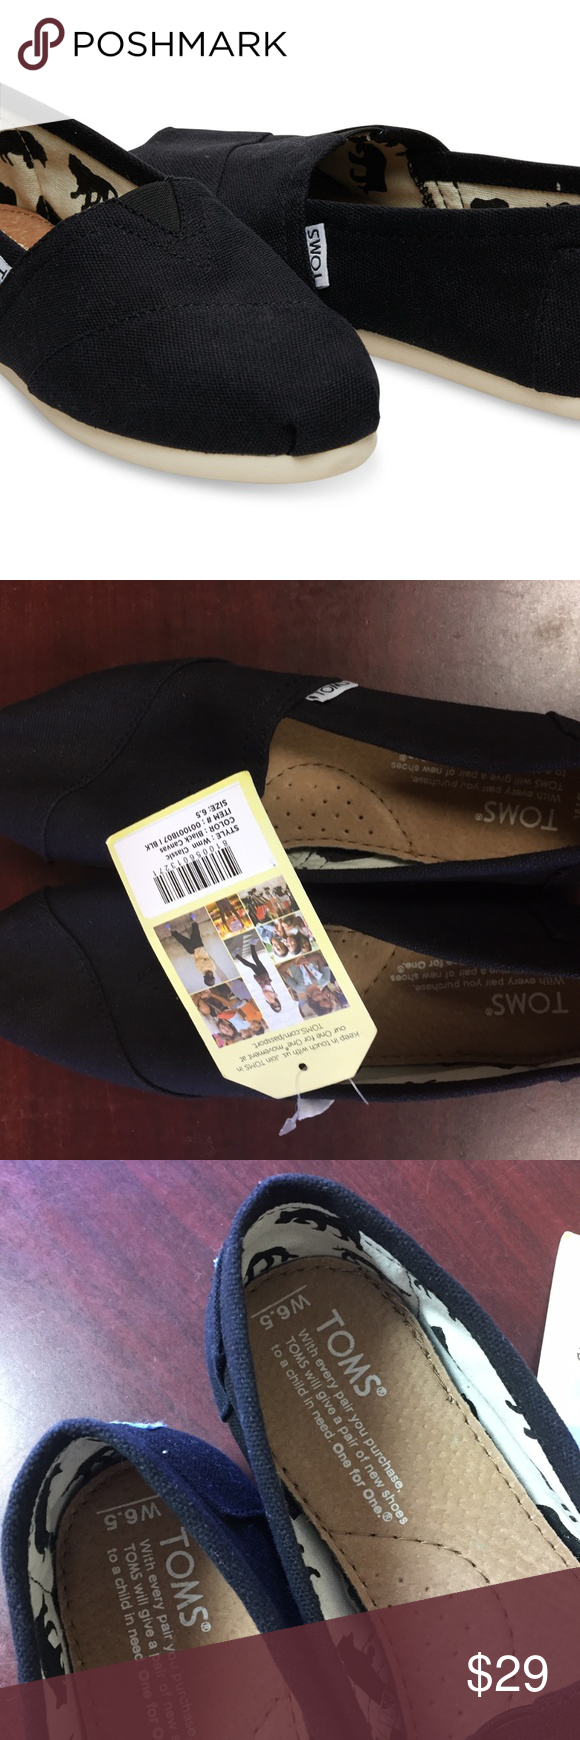 990f5dad40b NWT TOMS Women s Classic Canvas slip-on 104 Major Department Store Brand.  100%